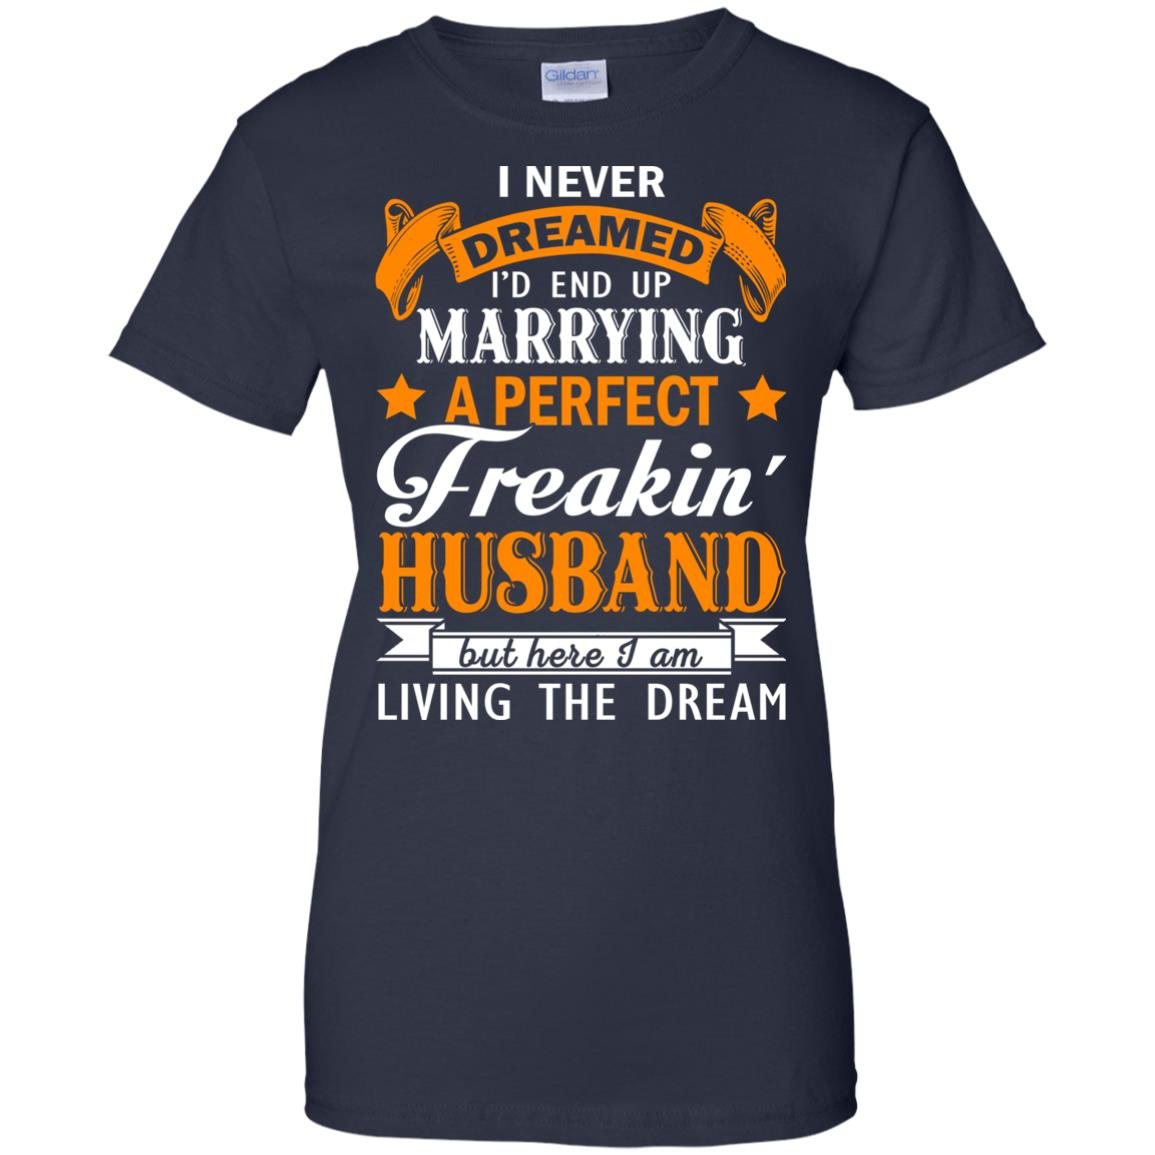 image 1849px I never dreamed I'd end up marrying a perfect freaking husband t shirts, hoodies, tank